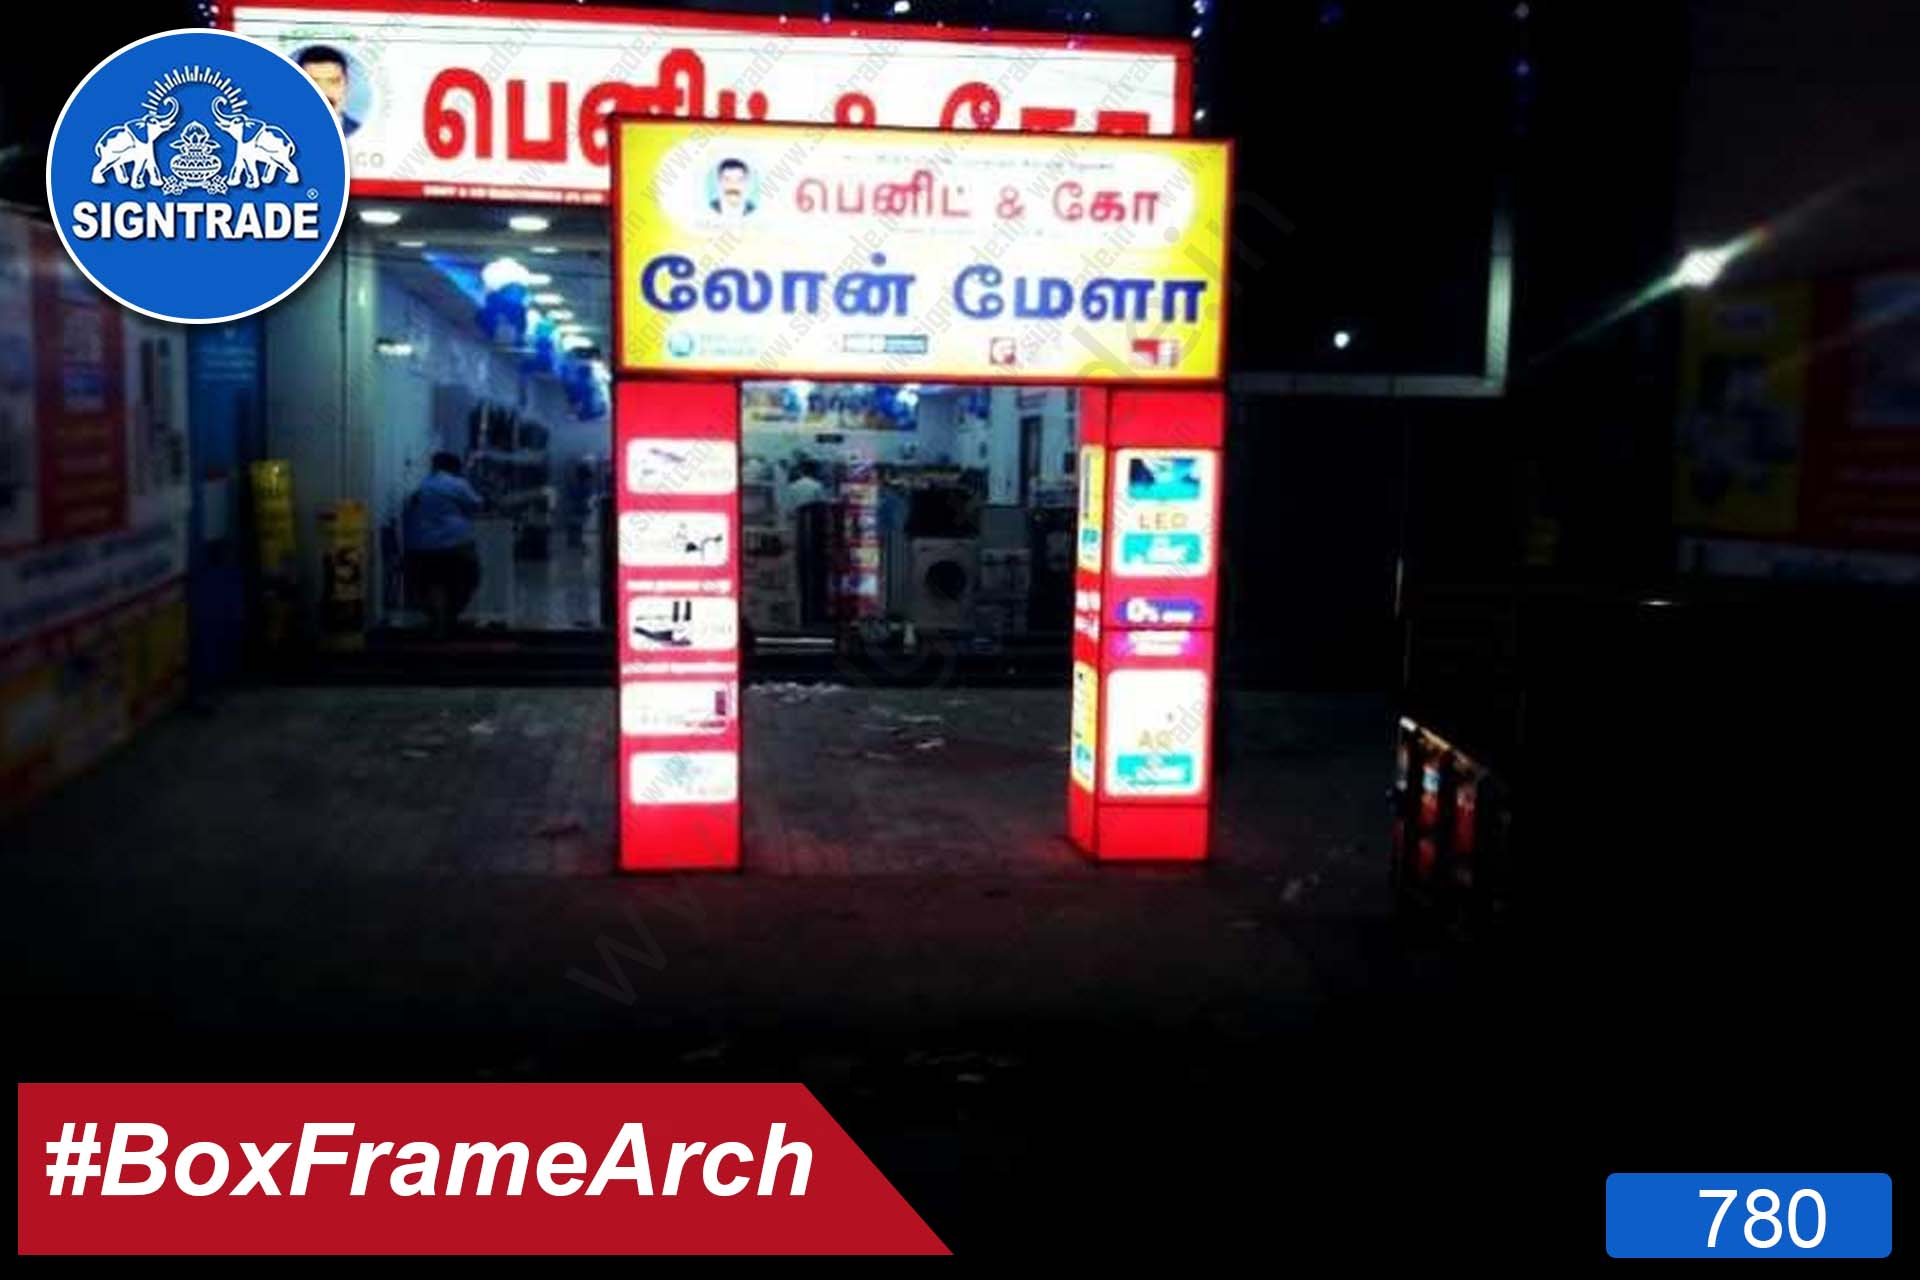 Benit & Co - Promotional Arch